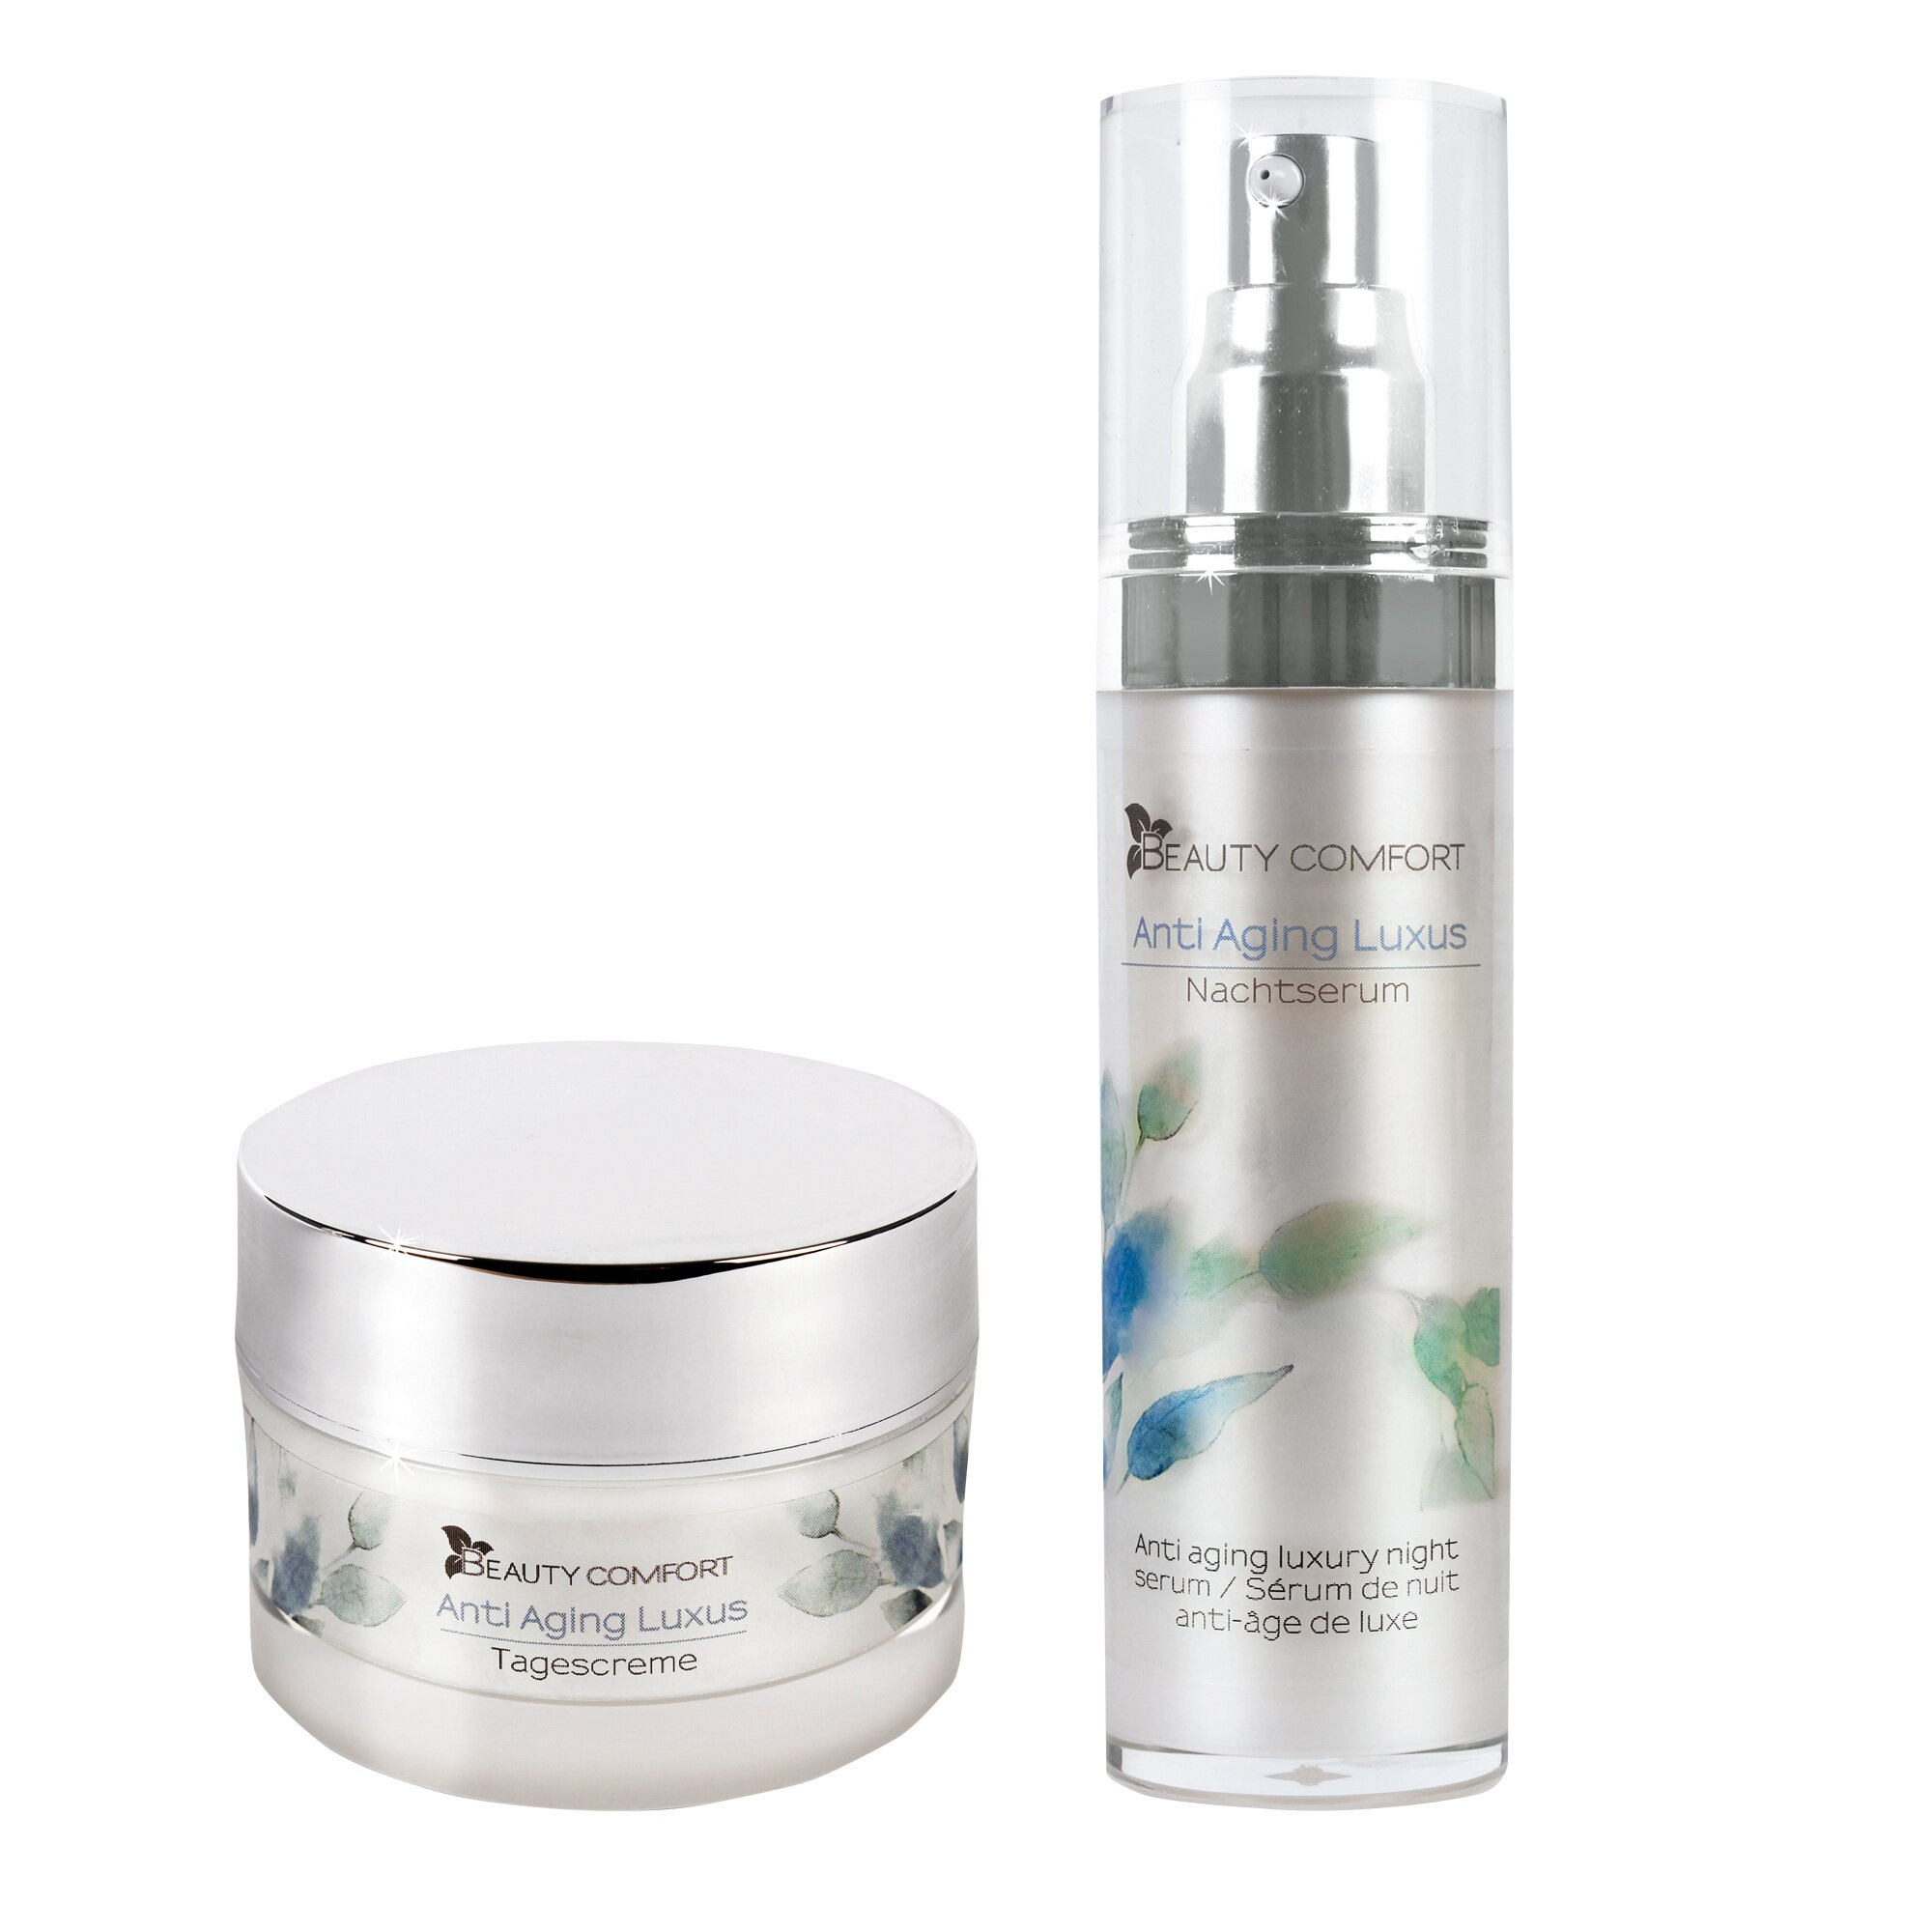 Image of Anti Aging Luxus Tages- und Nachtcreme, 2 Teile